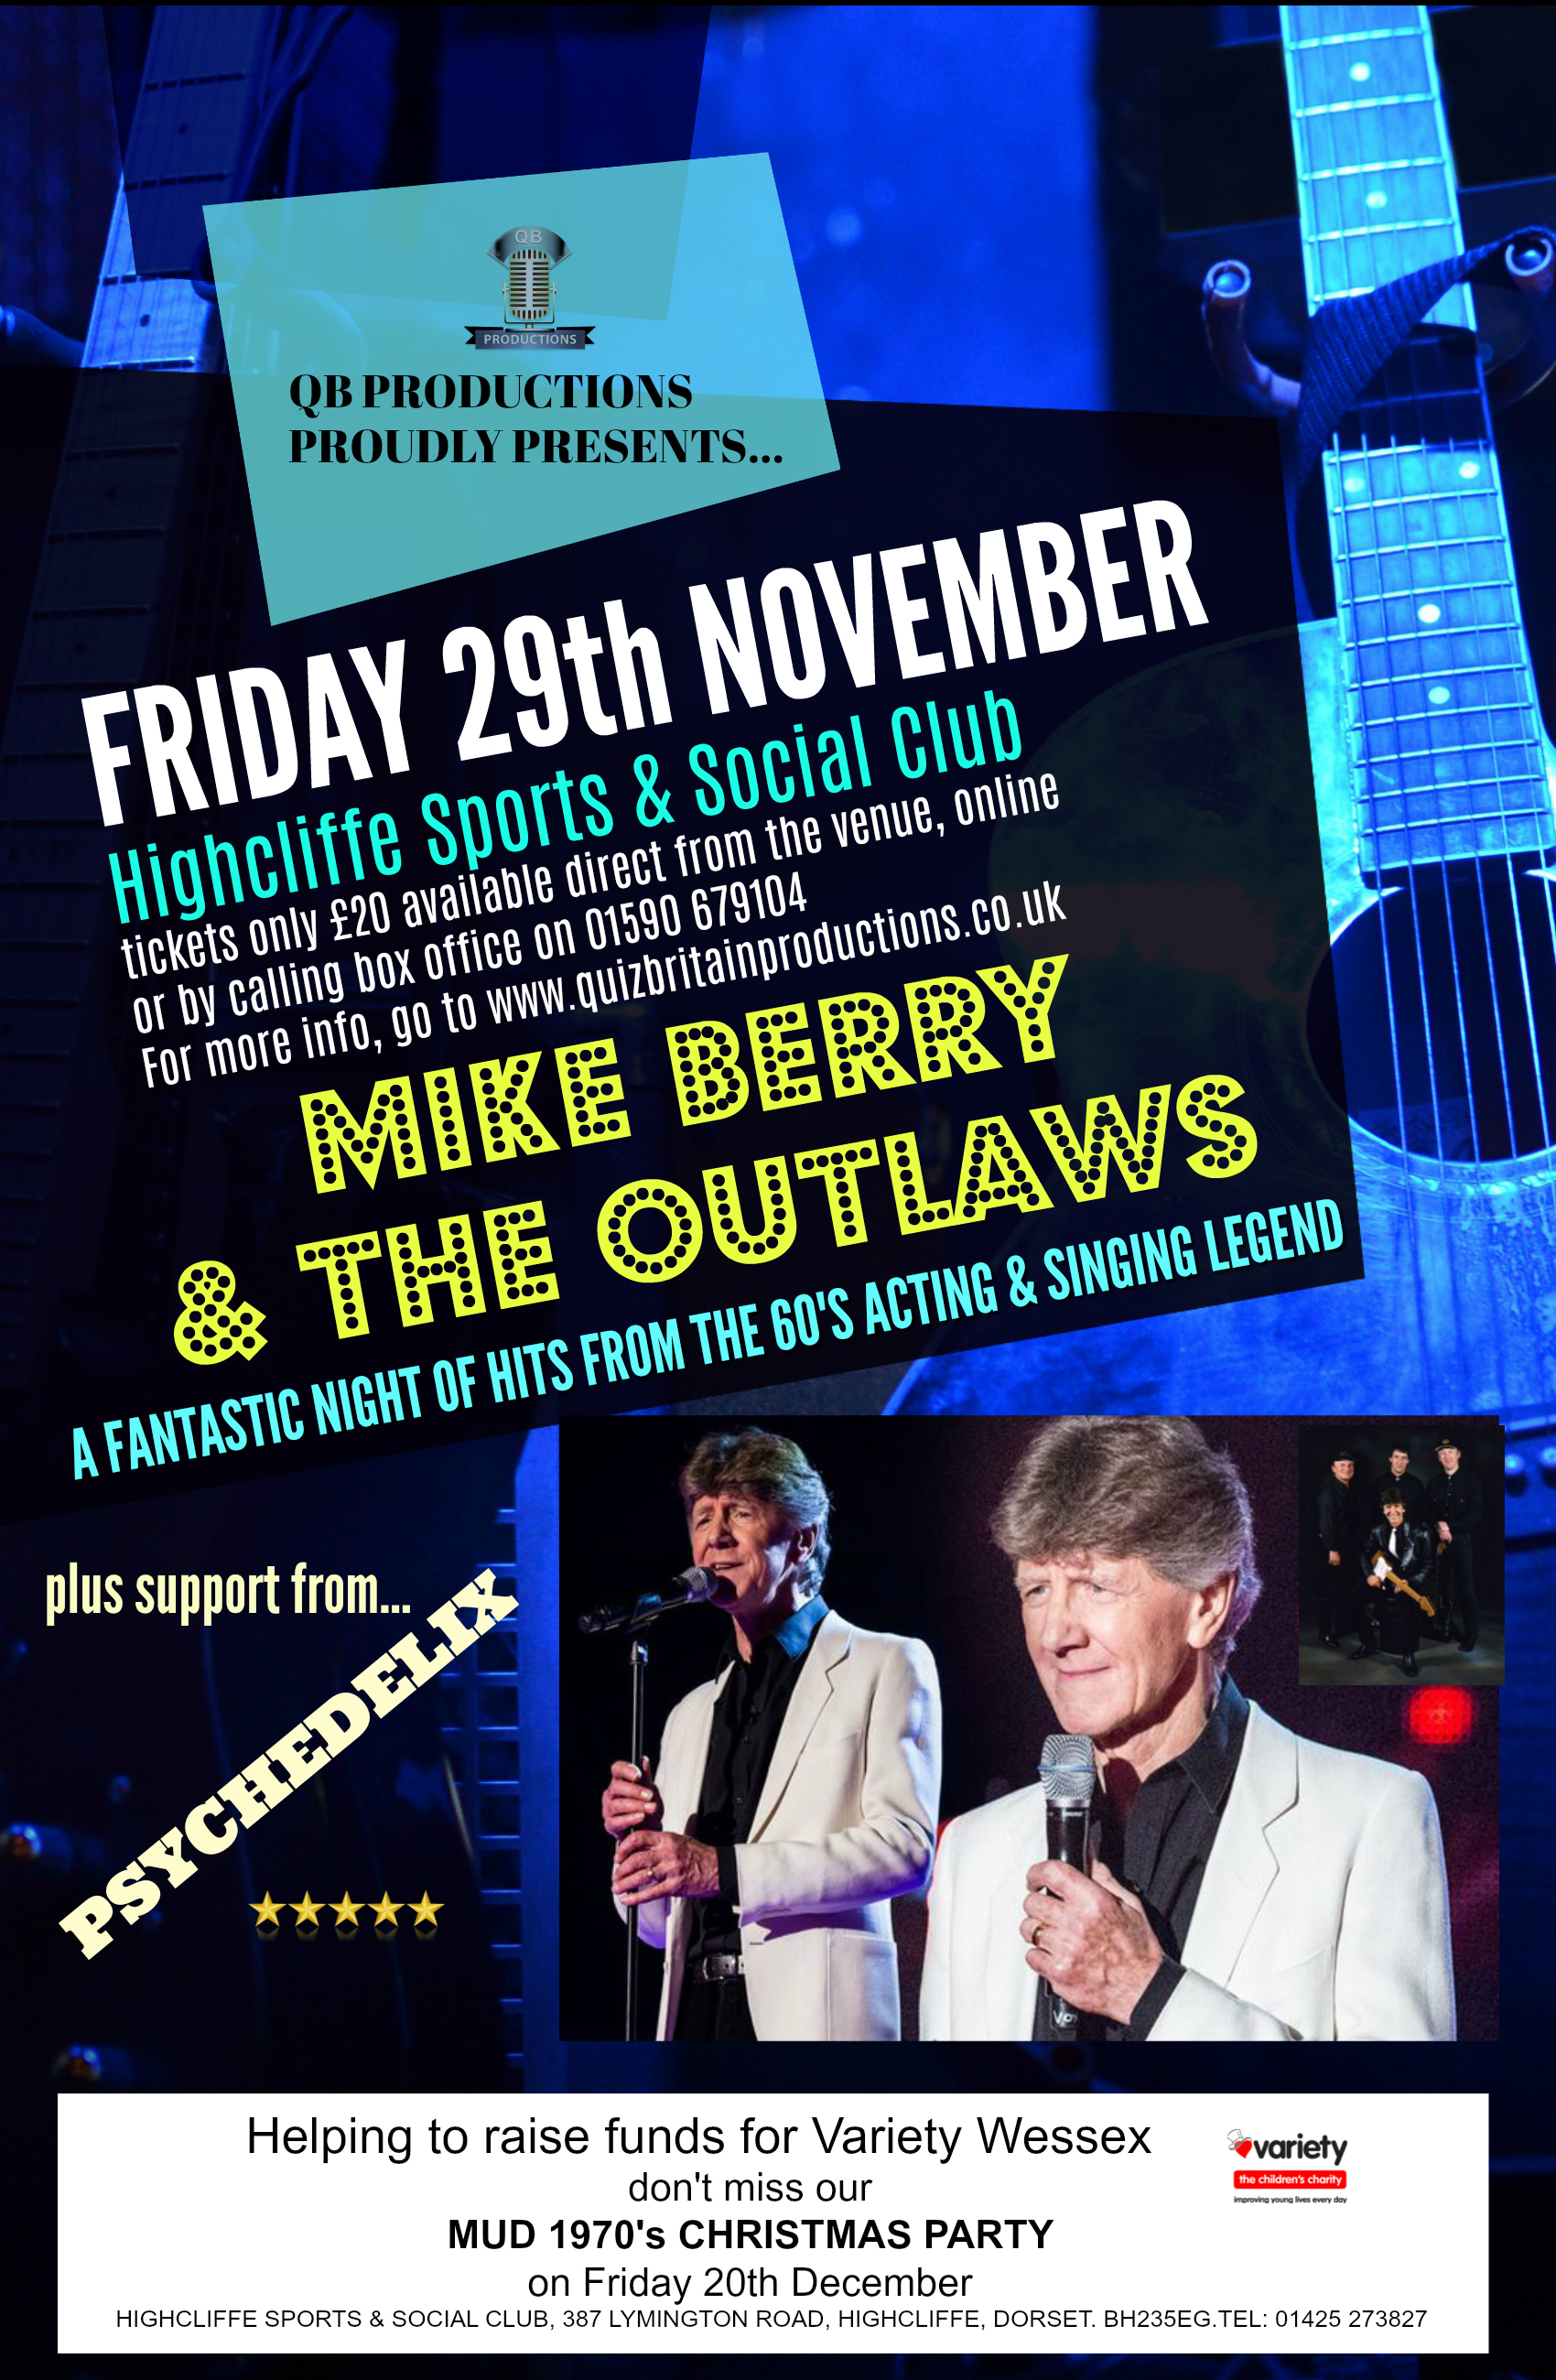 Retro 1960's night with Mike Berry & the Outlaws